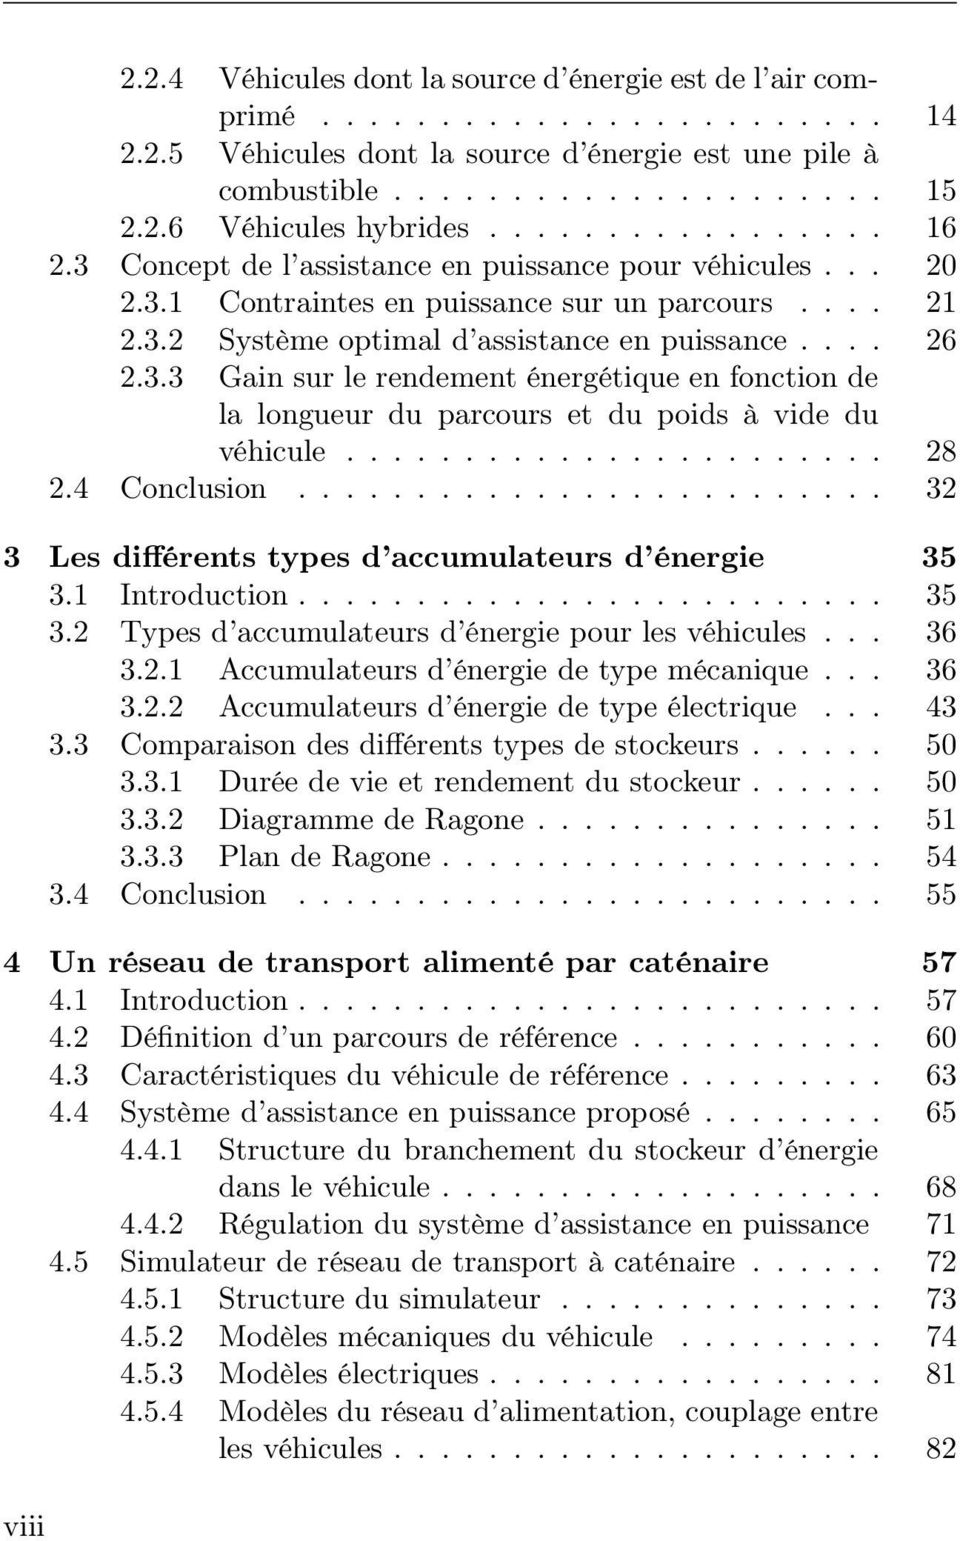 .. 28 2.4 Conclusion... 32 3 Les différents types d accumulateurs d énergie 35 3.1 Introduction... 35 3.2 Types d accumulateurs d énergie pour les véhicules... 36 3.2.1 Accumulateurs d énergie de type mécanique.